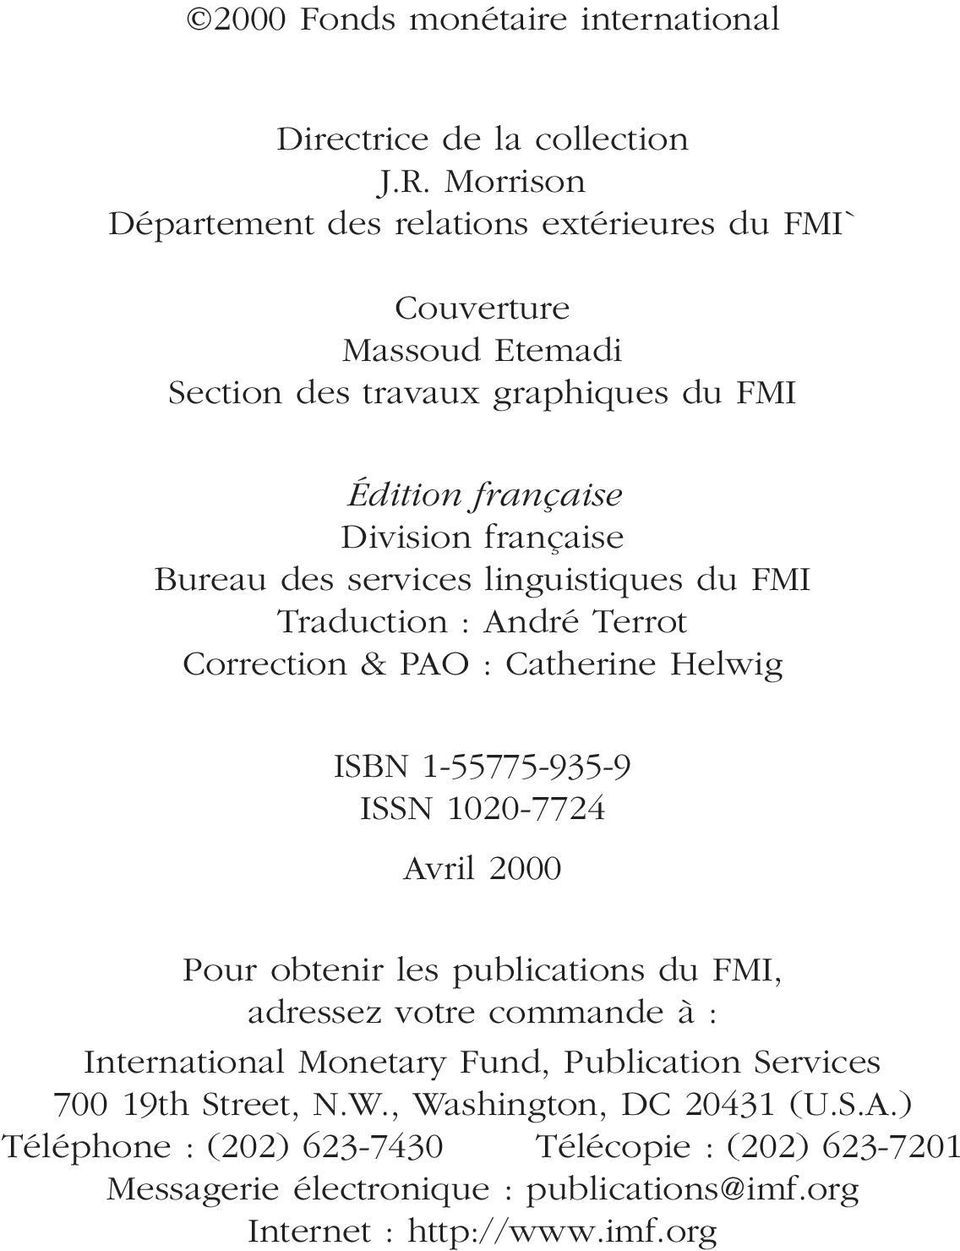 services linguistiques du FMI Traduction : André Terrot Correction & PAO : Catherine Helwig ISBN 1-55775-935-9 ISSN 1020-7724 Avril 2000 Pour obtenir les publications